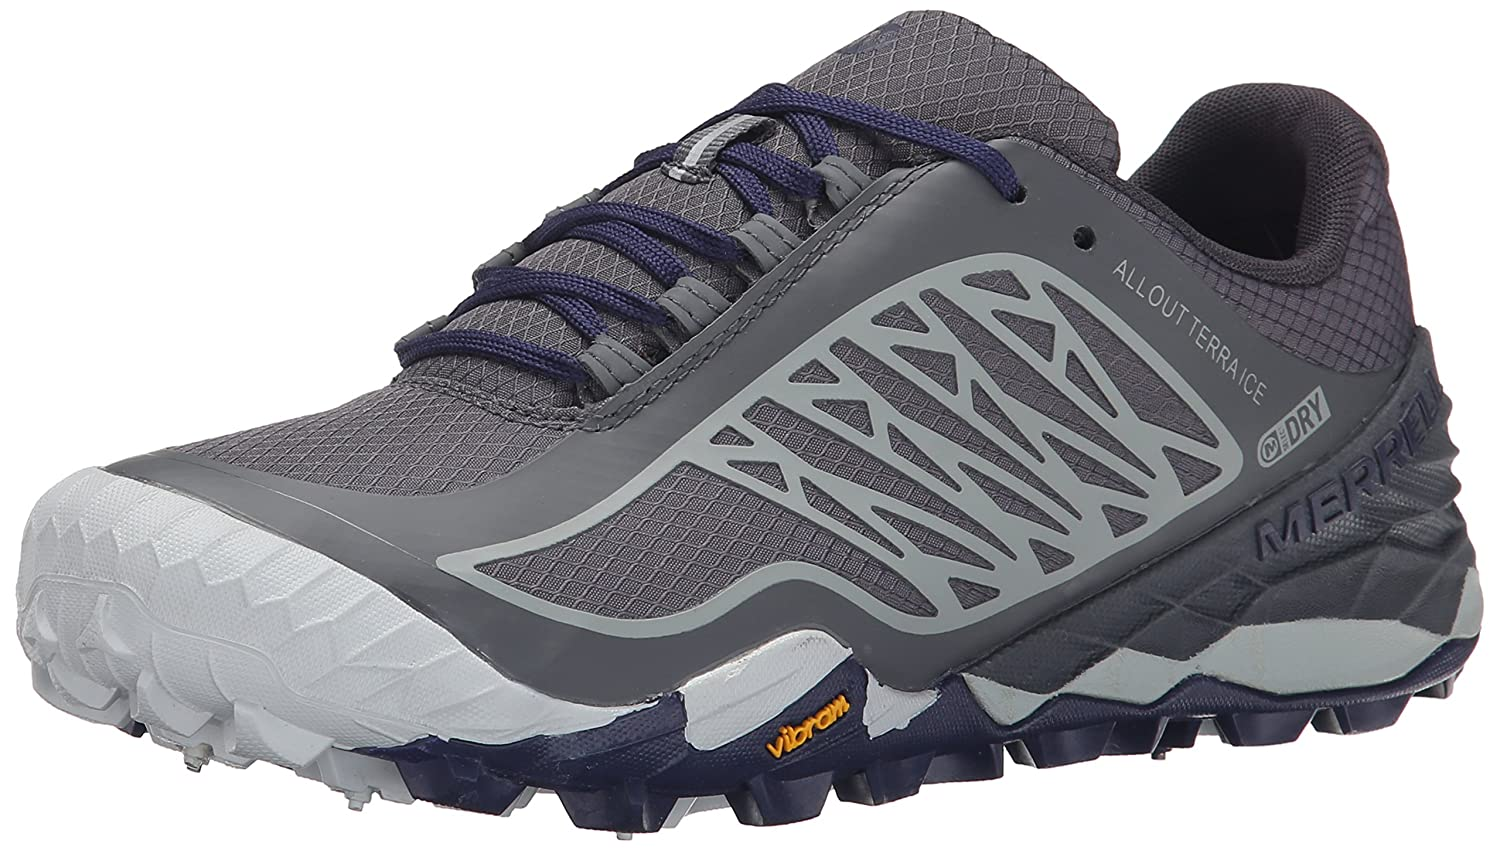 finest selection 14c45 d7f15 Merrell Women's All Out Terra Ice Waterproof Trail Running Shoe